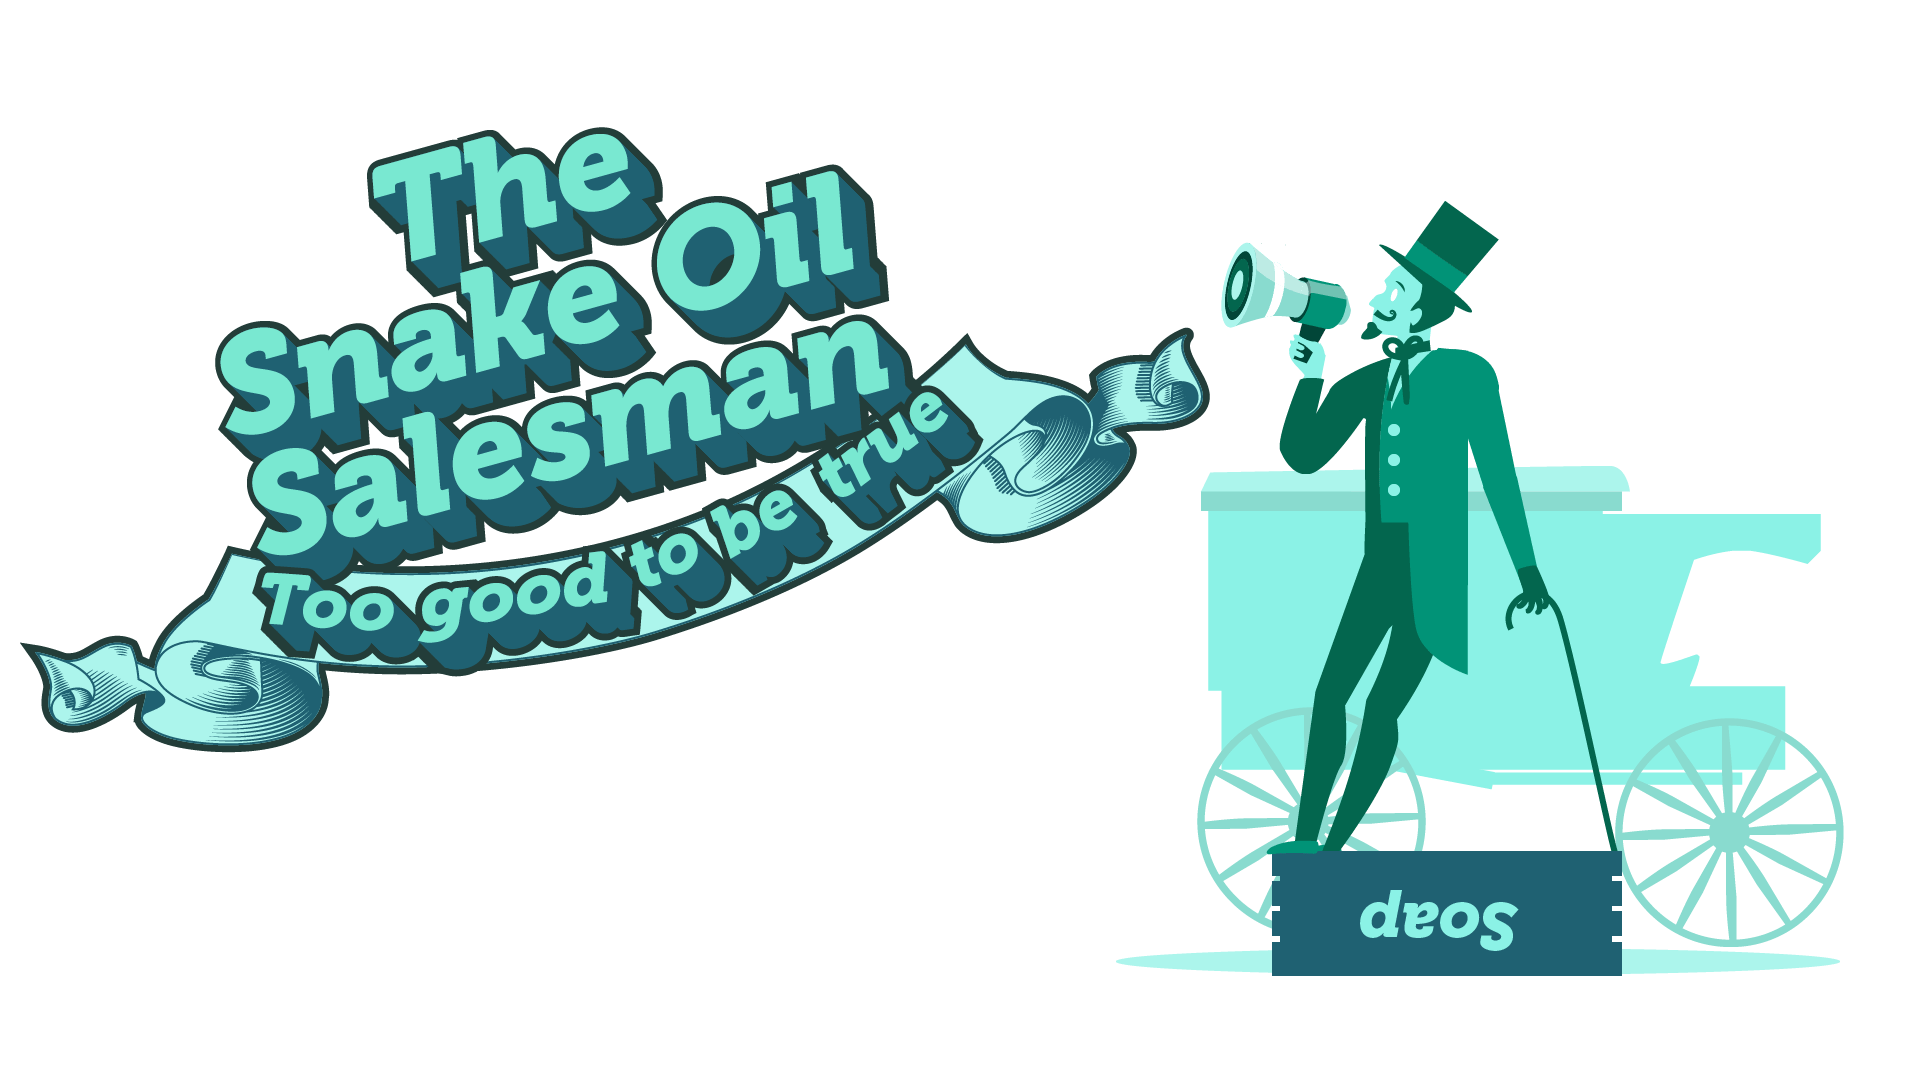 Title 'The Snake Oil Salesman' subtitle 'Too good to be true.'